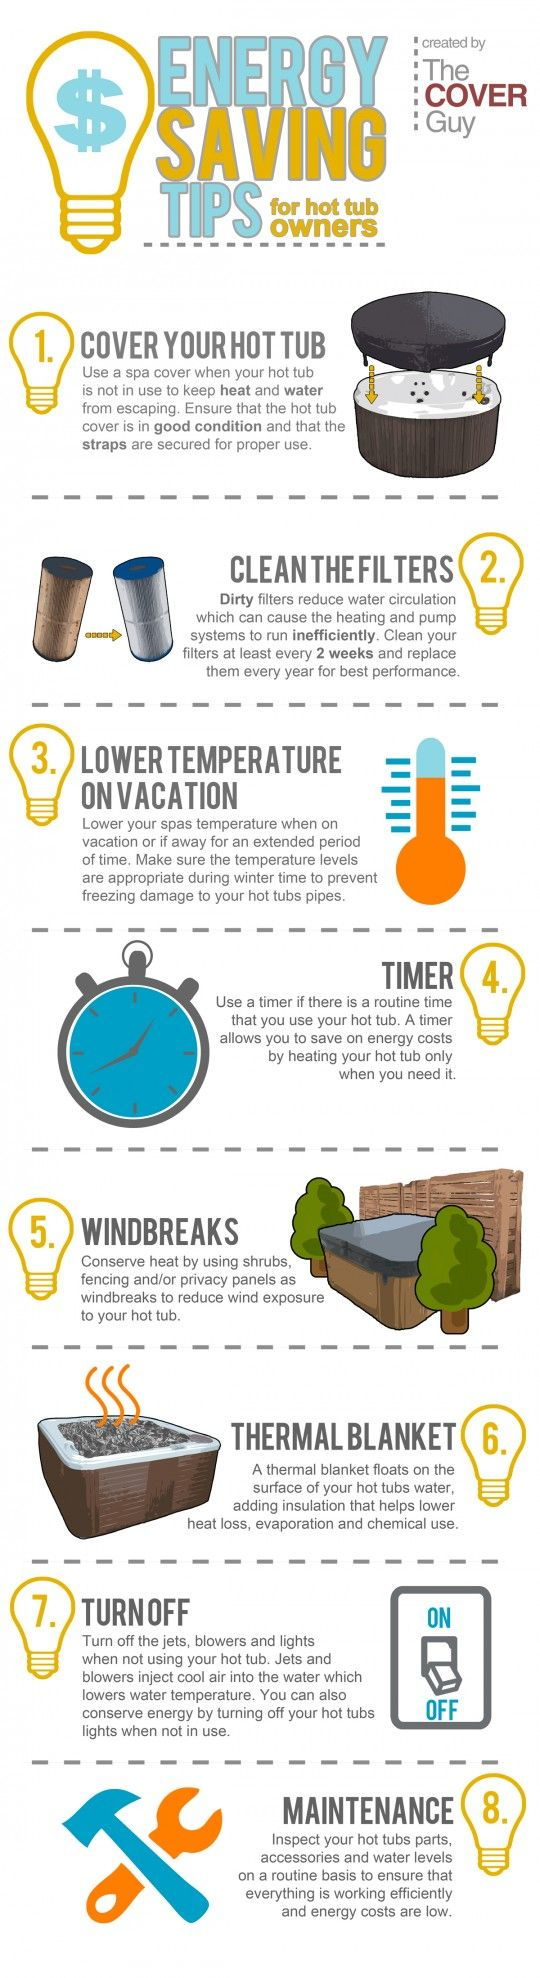 Energy Saving Tips for Hot Tub Owners   Backyard Blast by TheCoverGuy.com